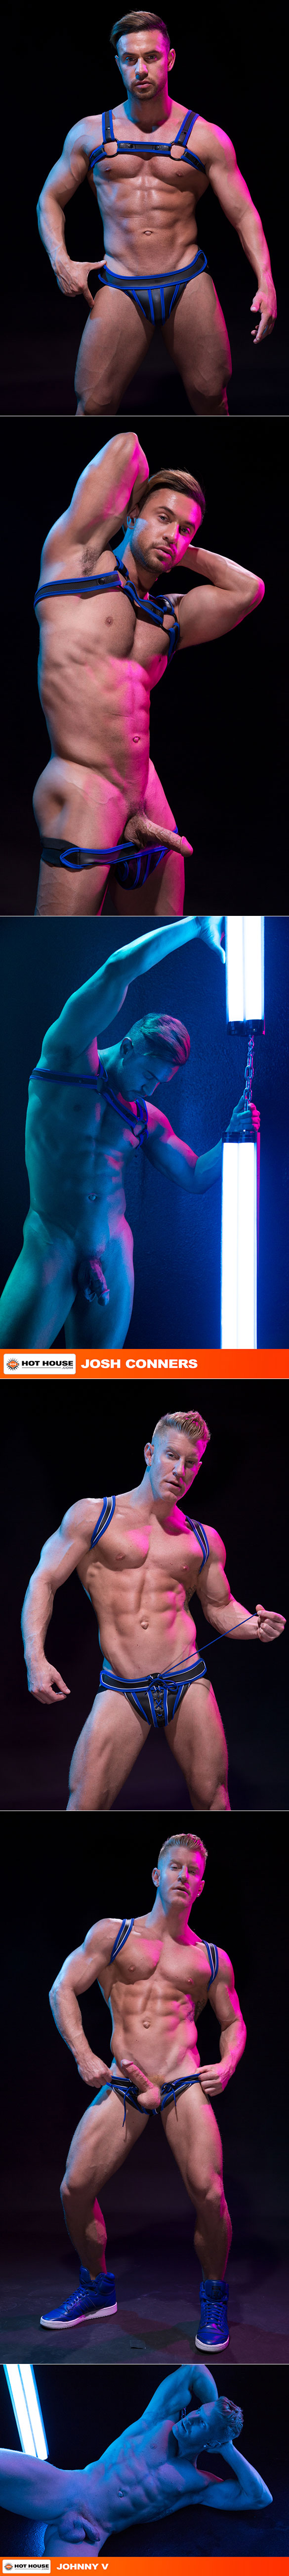 "HotHouse: Johnny V pounds Josh Conners in ""Get Lit"""